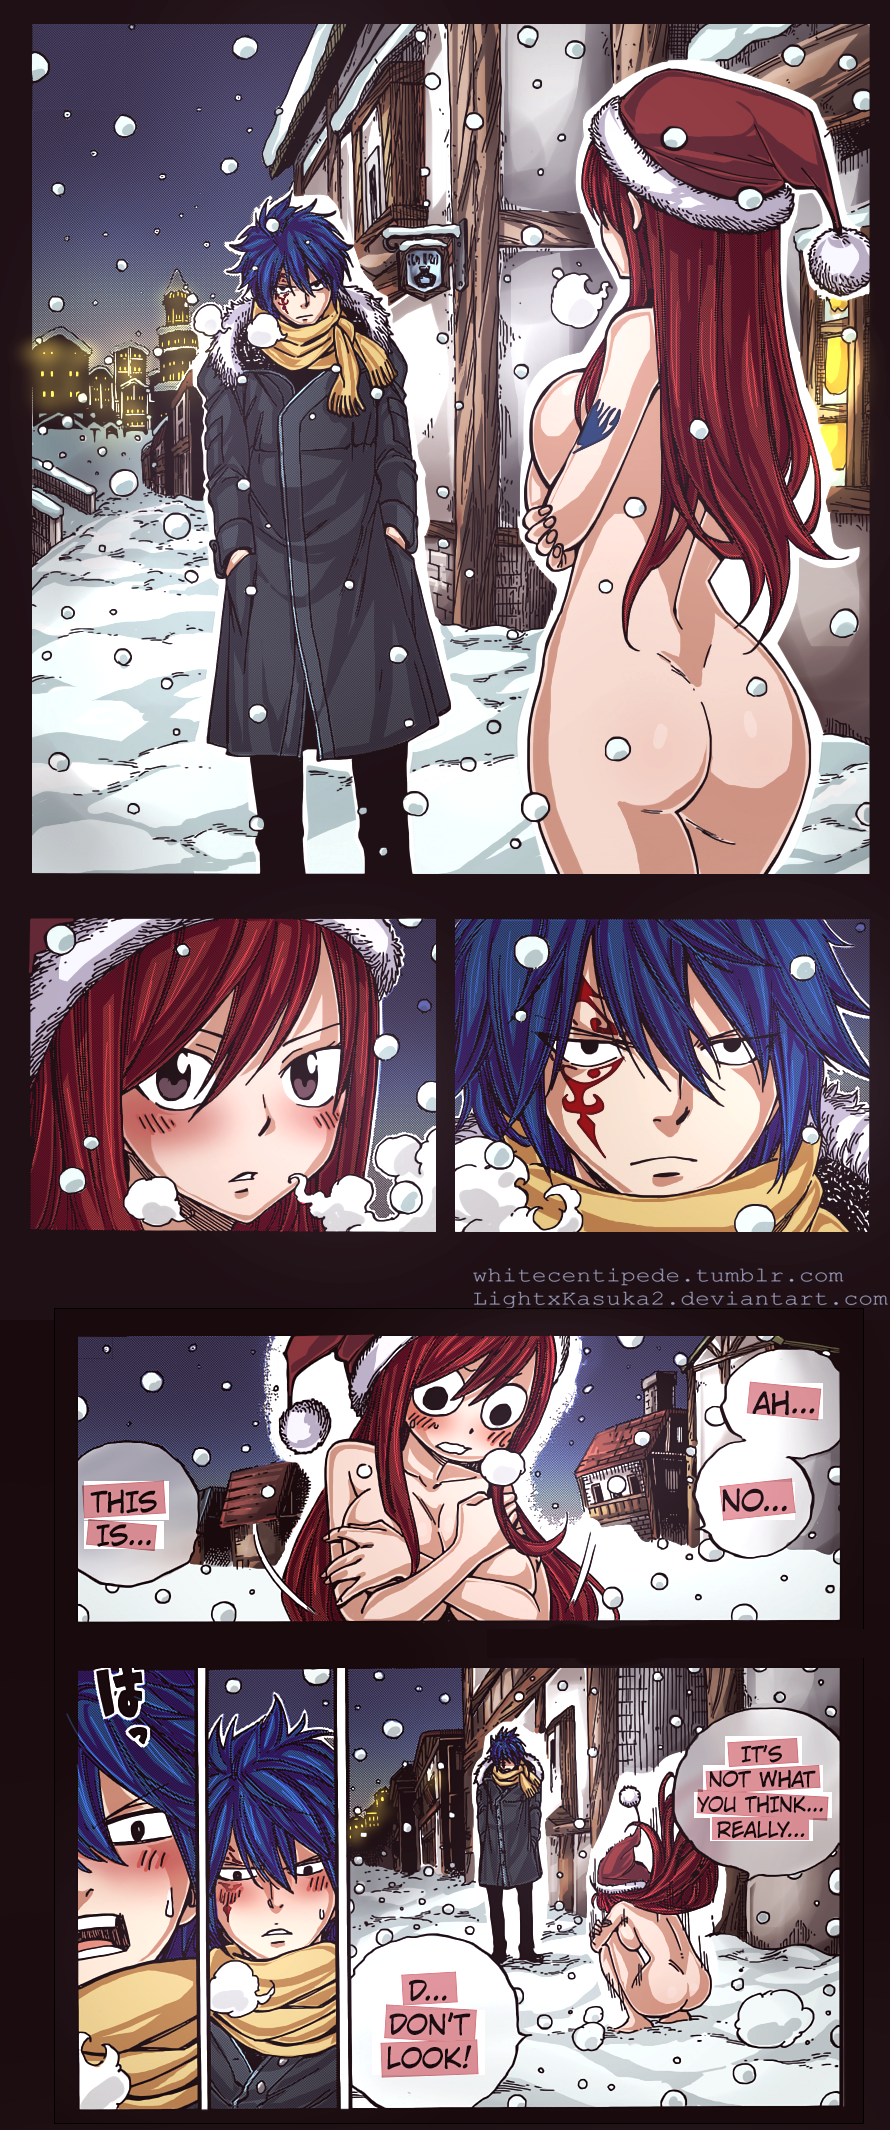 Erza naked tail fairy Fairy Tail